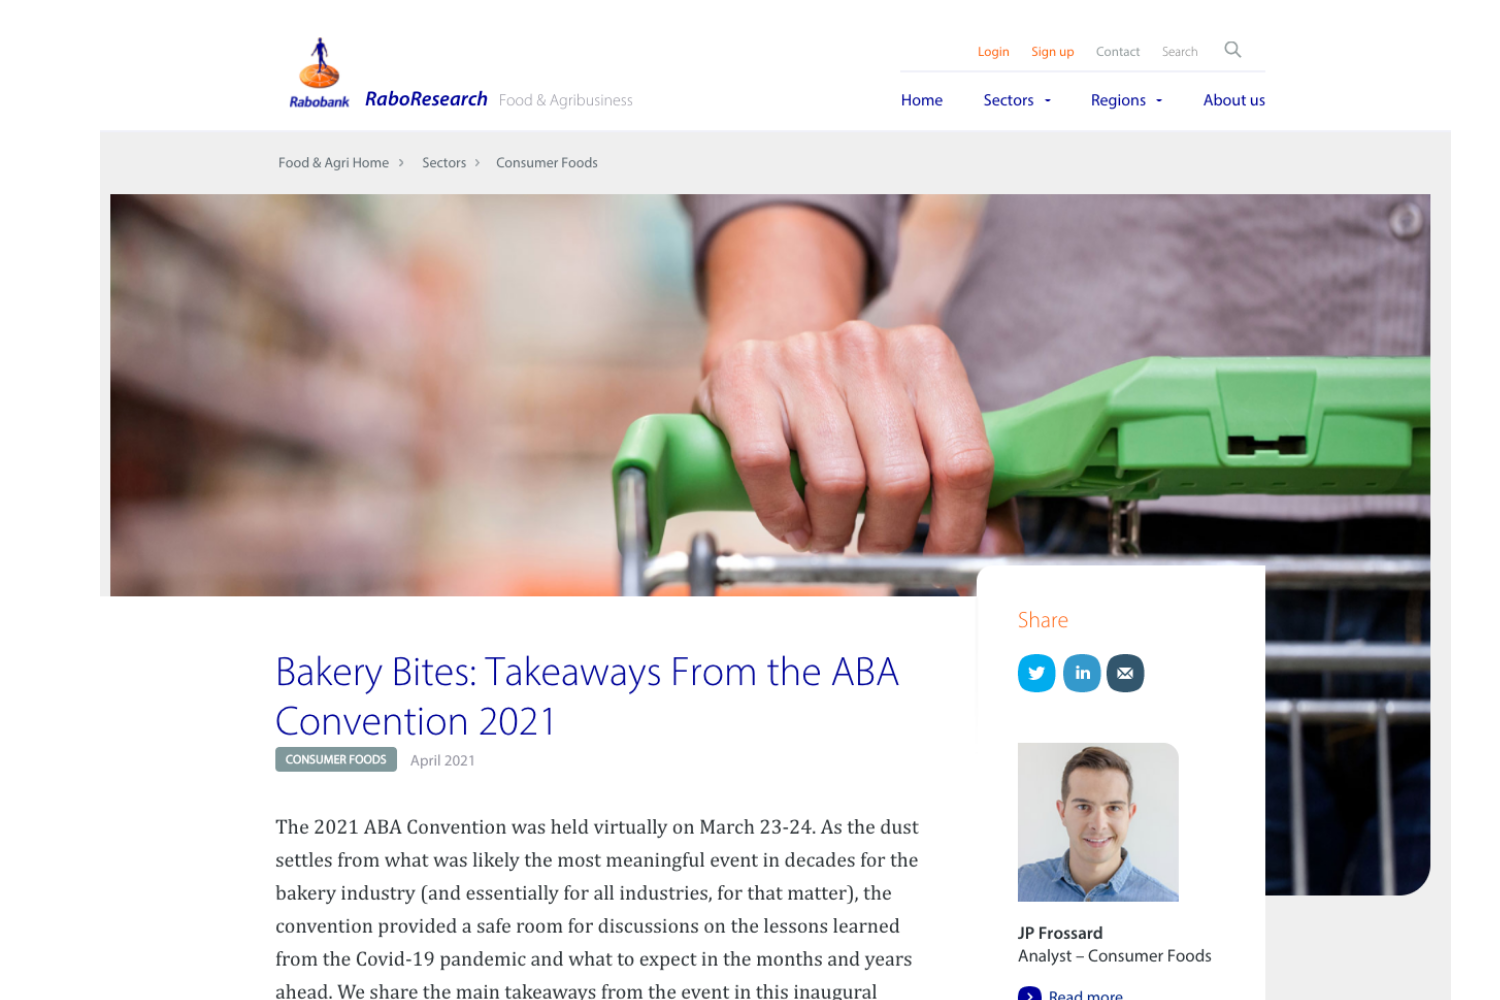 rabobank 2021 aba convention